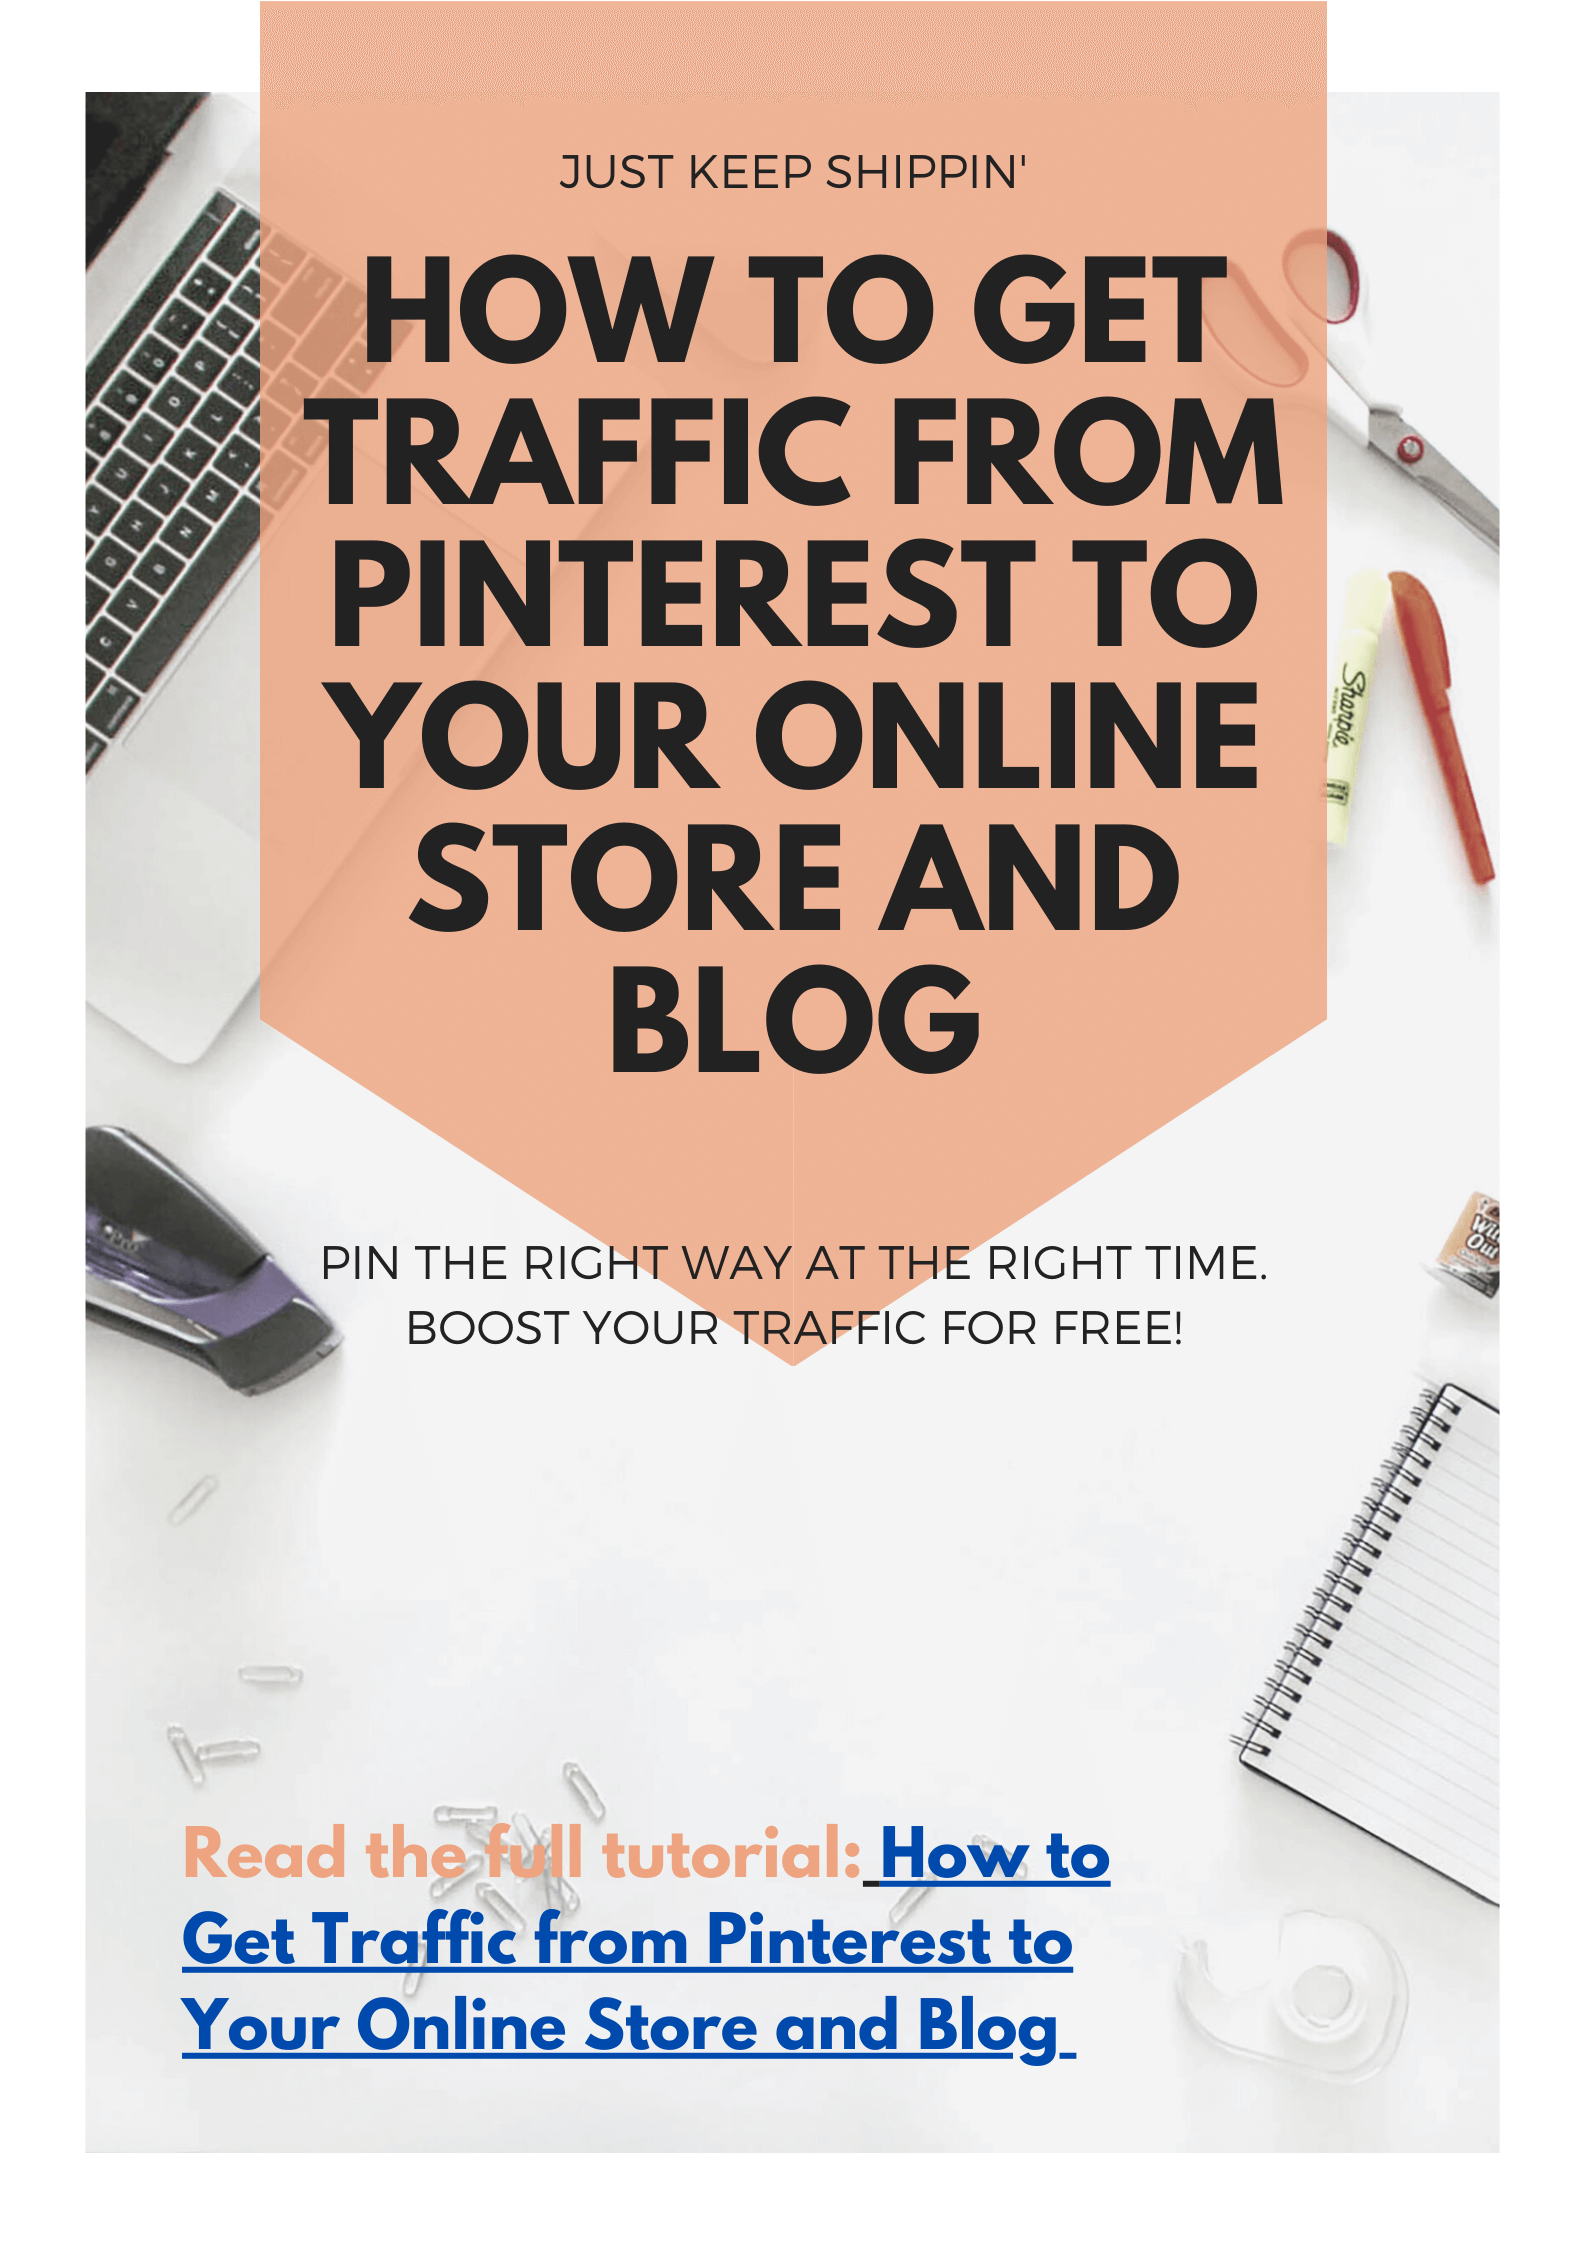 How to Get Traffic from Pinterest to Your Online Store and Blog2